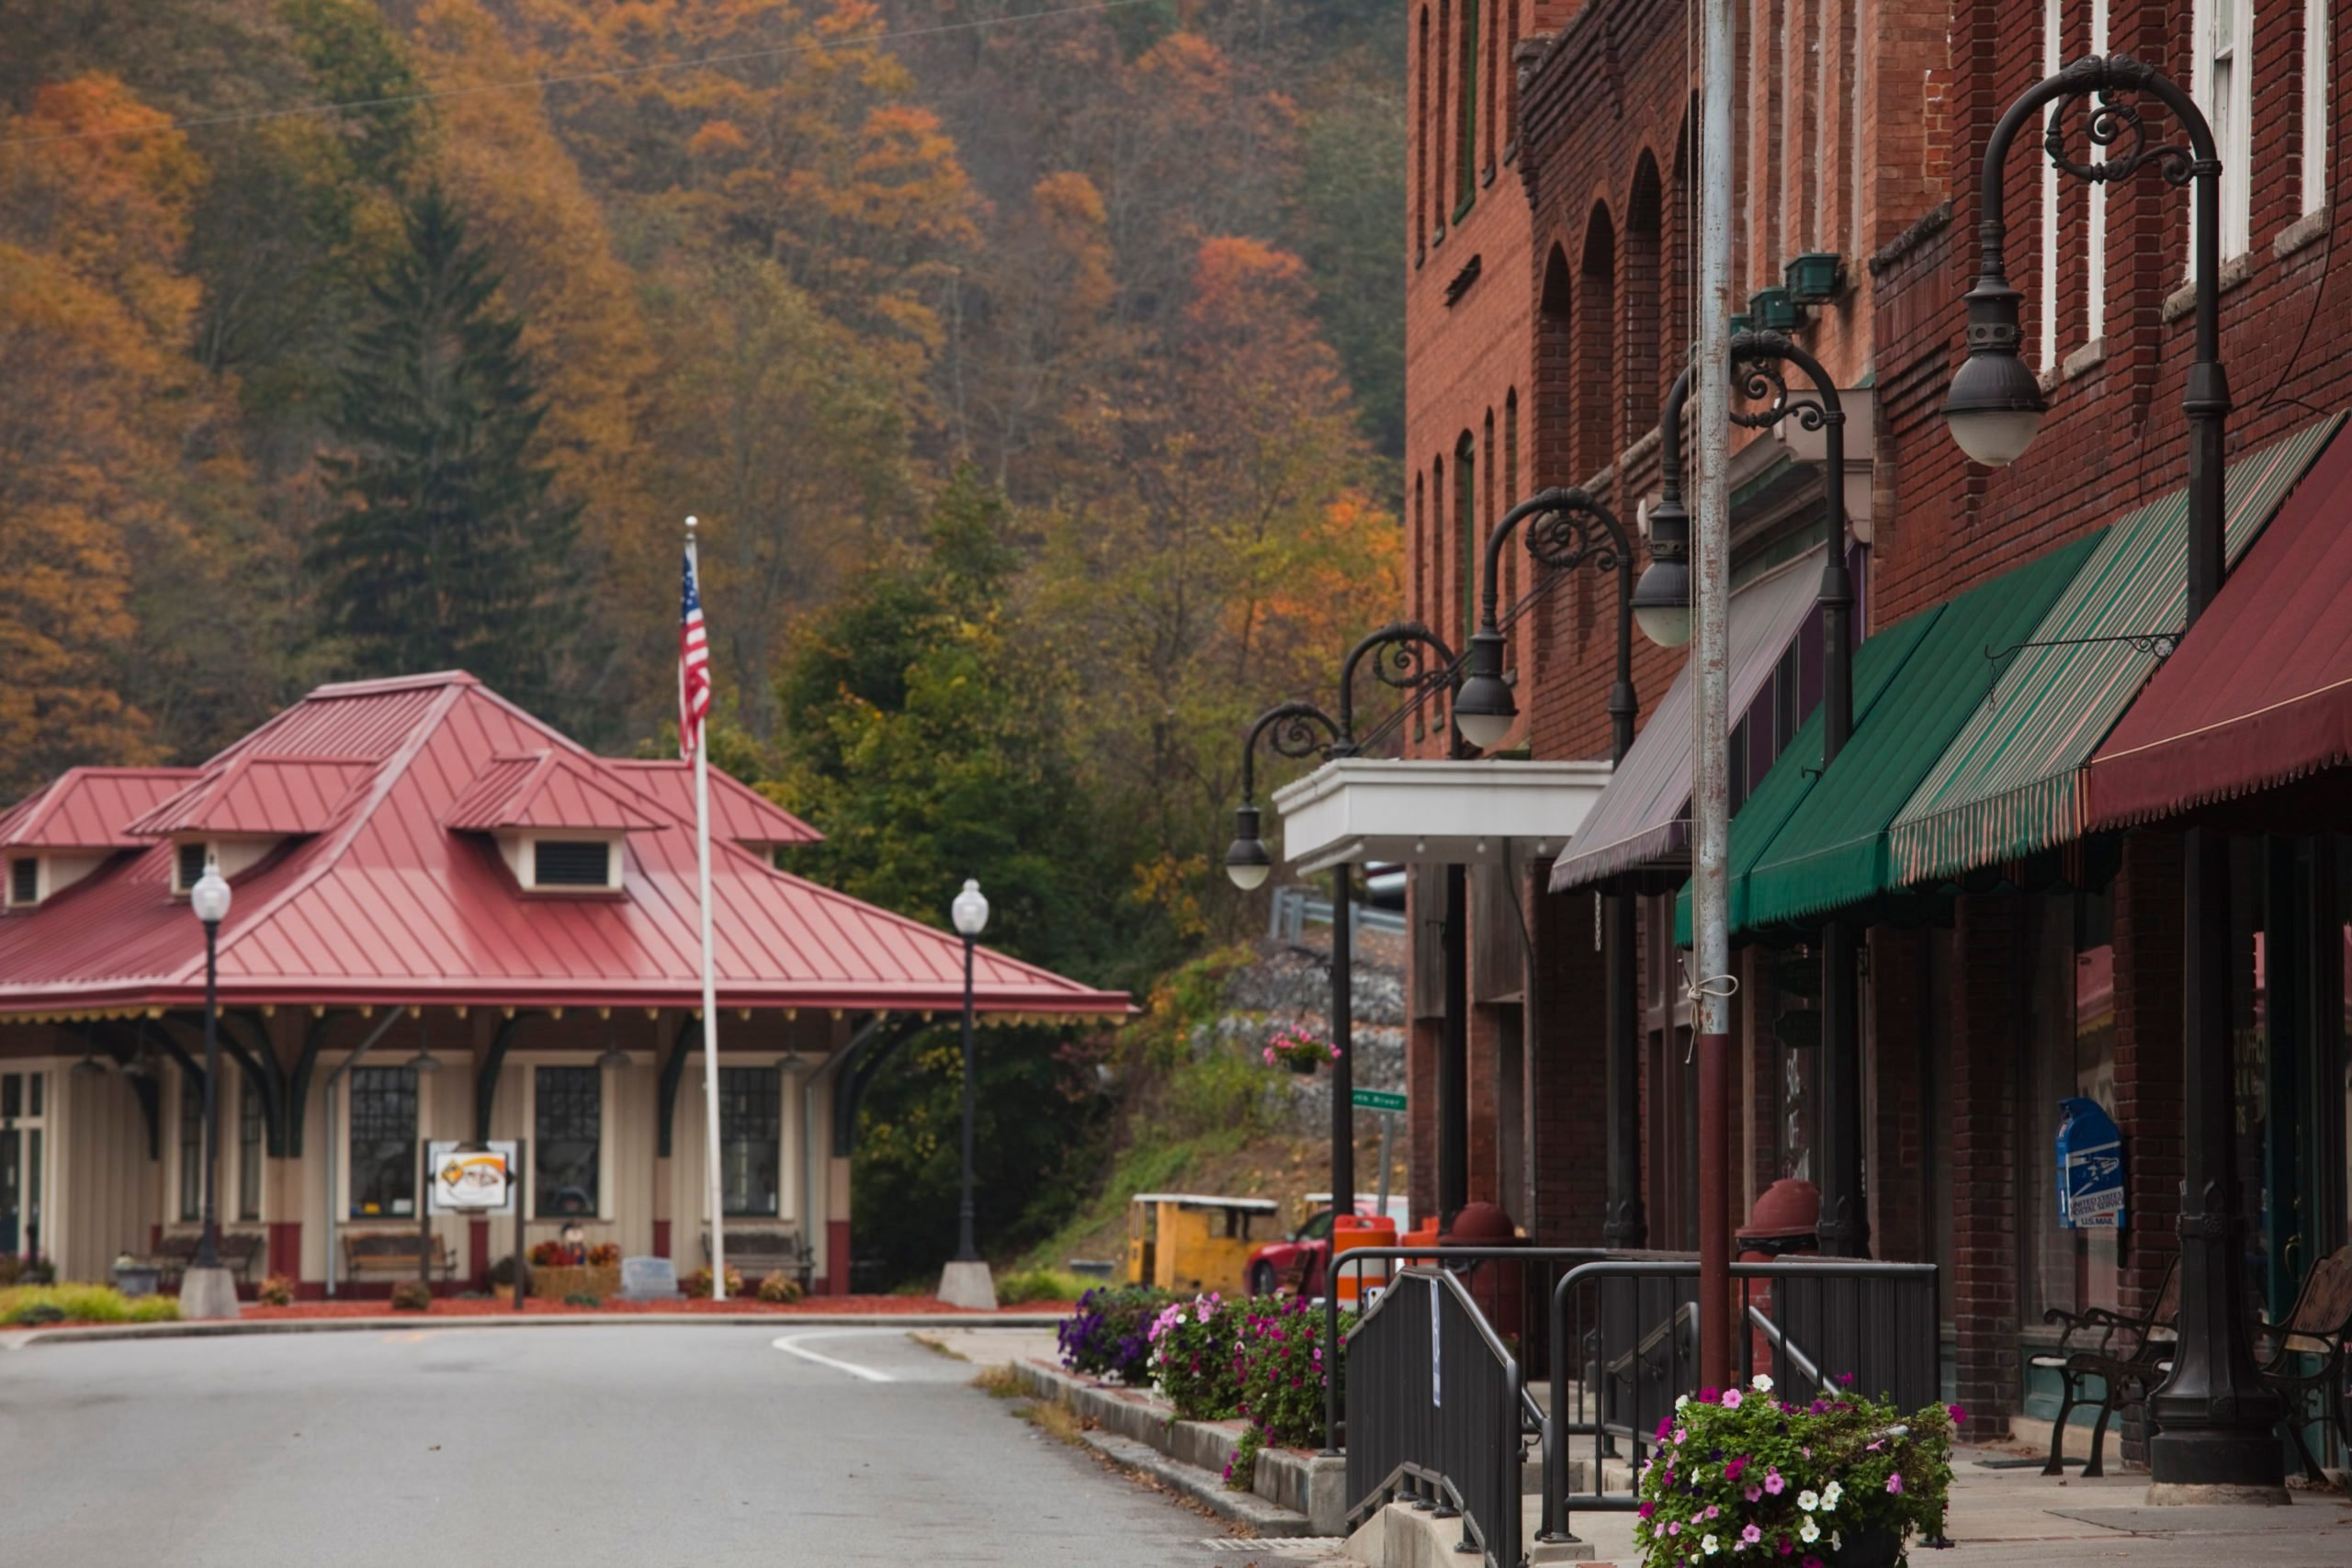 Train depot at Town of Millionaires, National Coal Heritage Area, Bramwell, West Virginia, USA